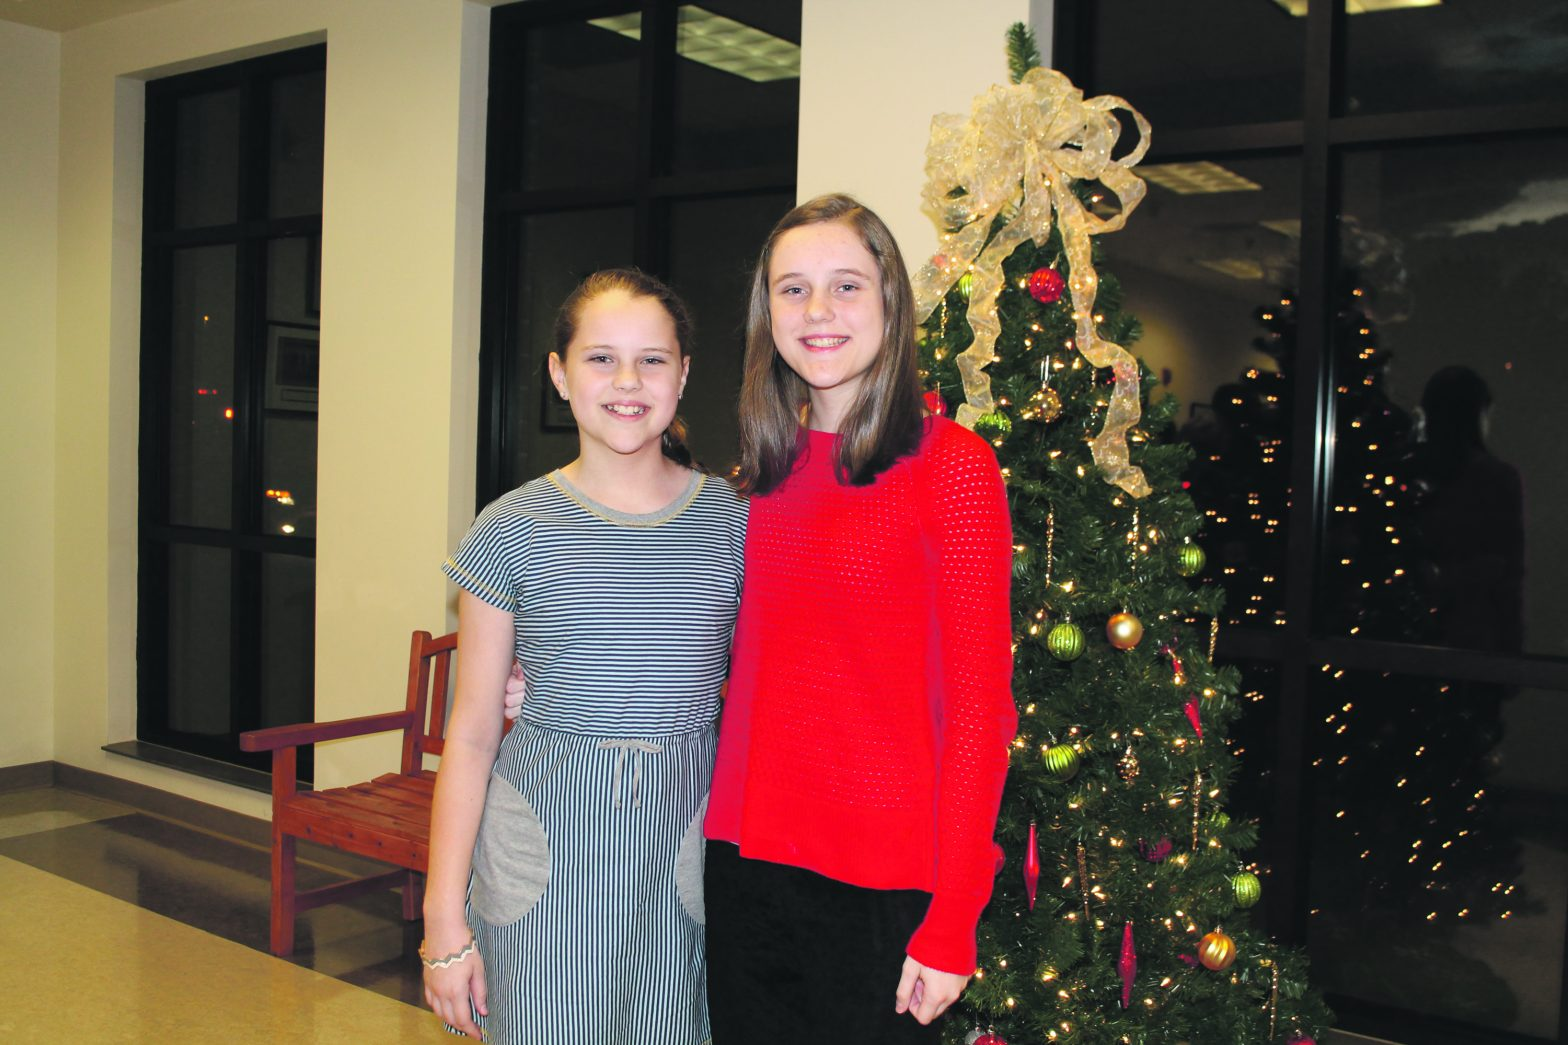 Troup County School Board Recognizes  Students And Staff For A Job Well Done